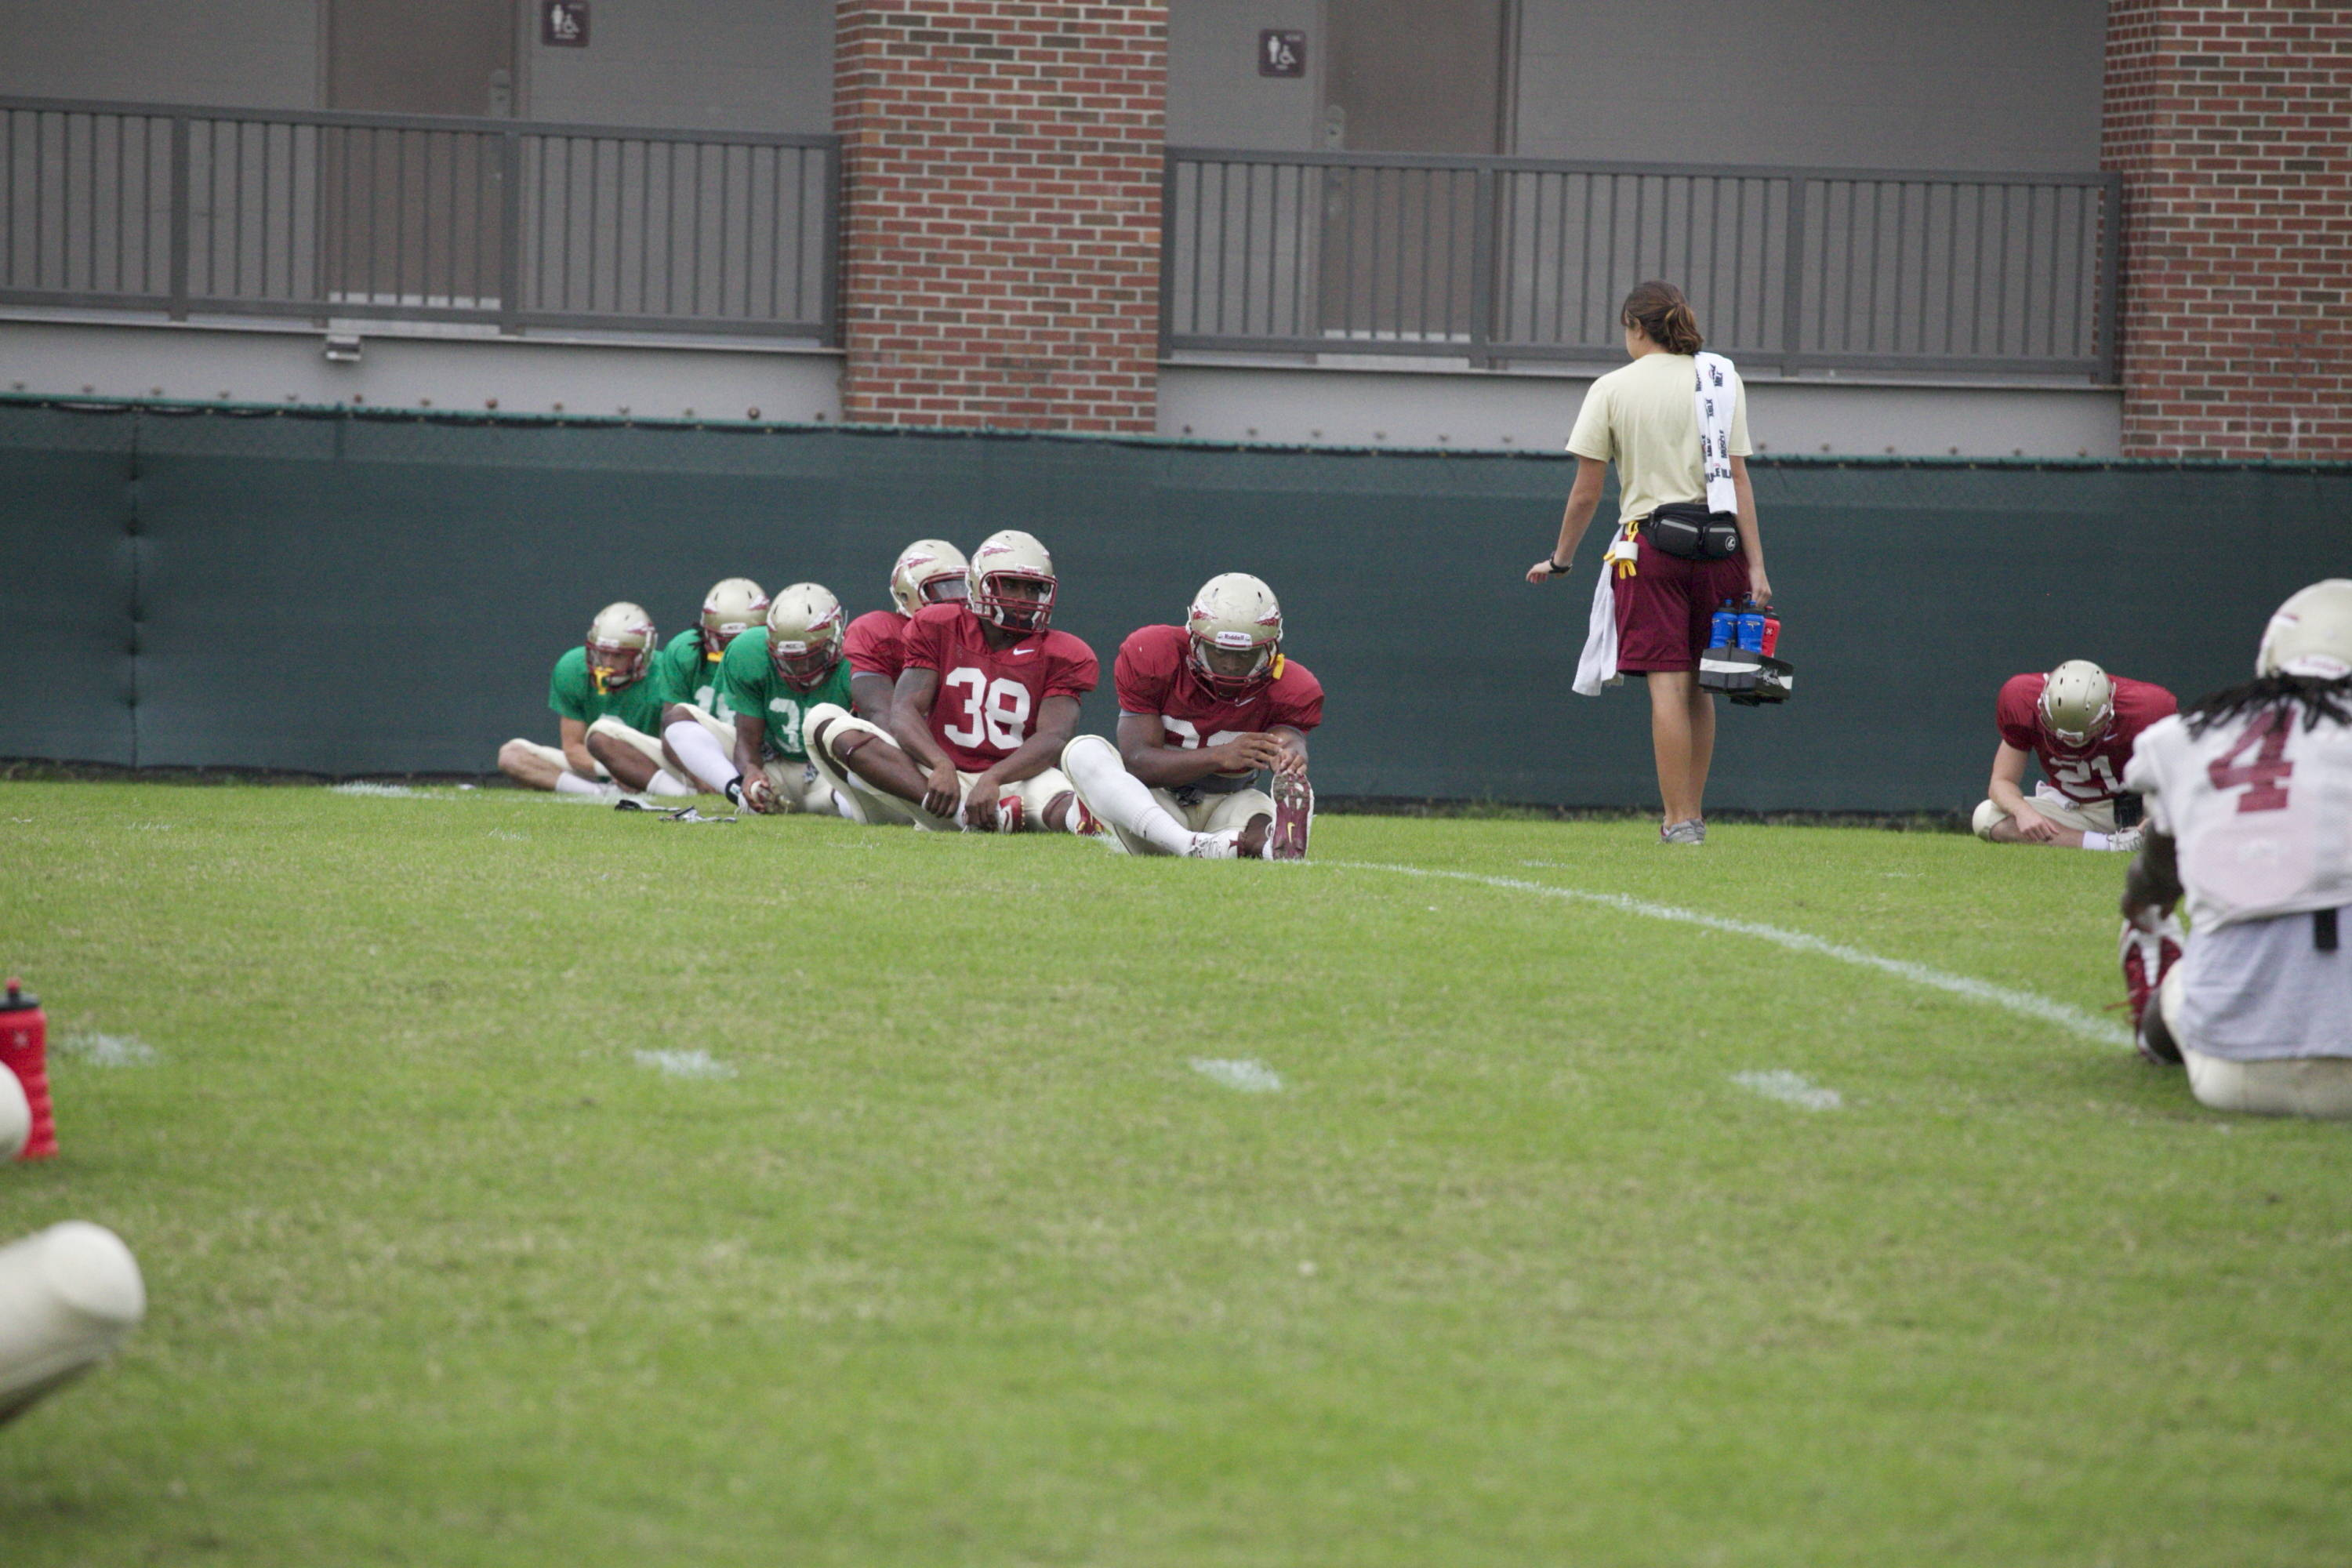 Stretching before practice